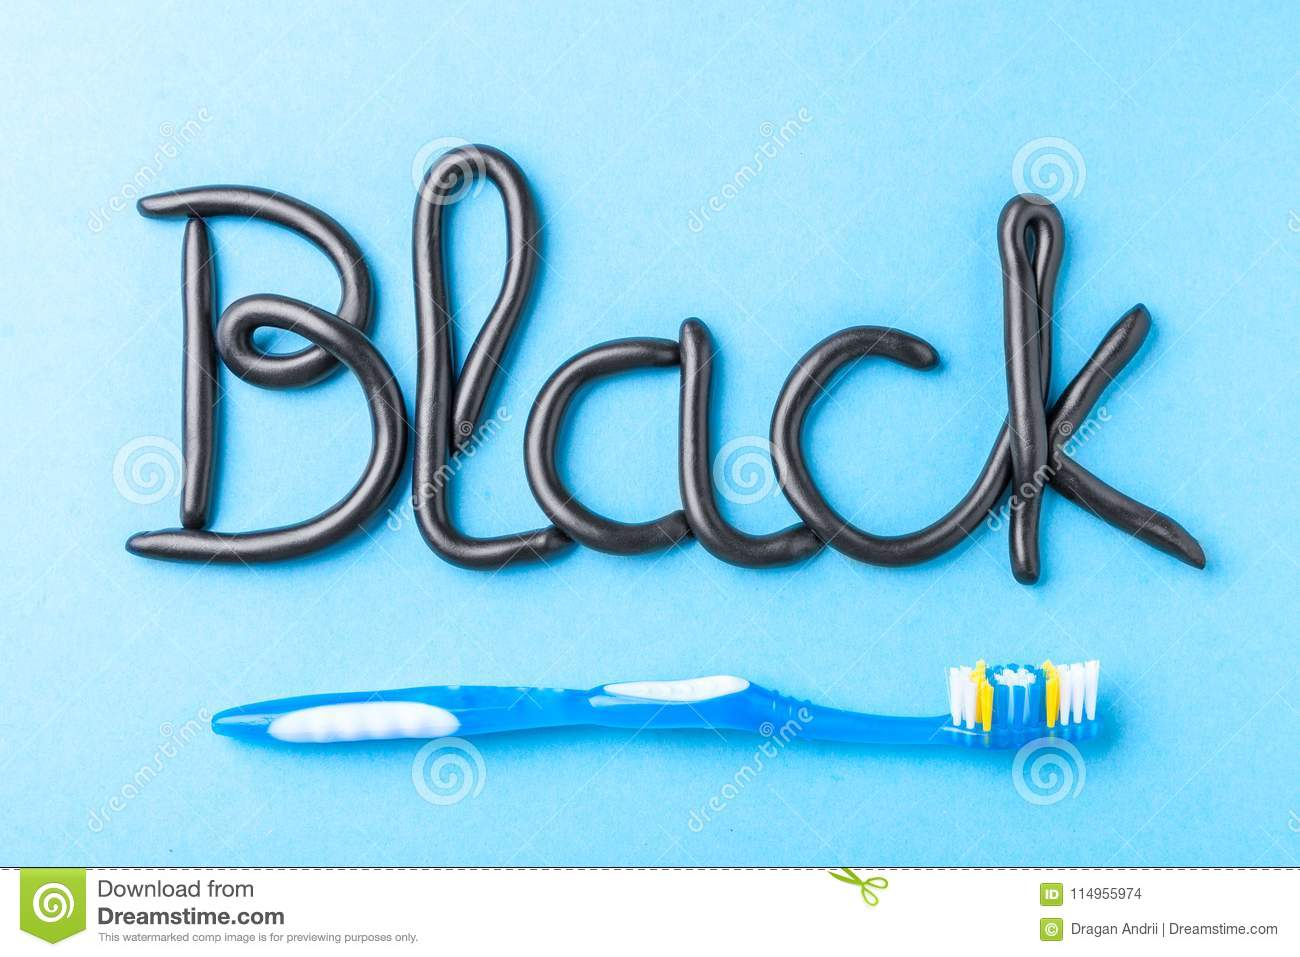 Black toothpaste from charcoal for white teeth. Word BLACK from toothpaste and toothbrush on blue